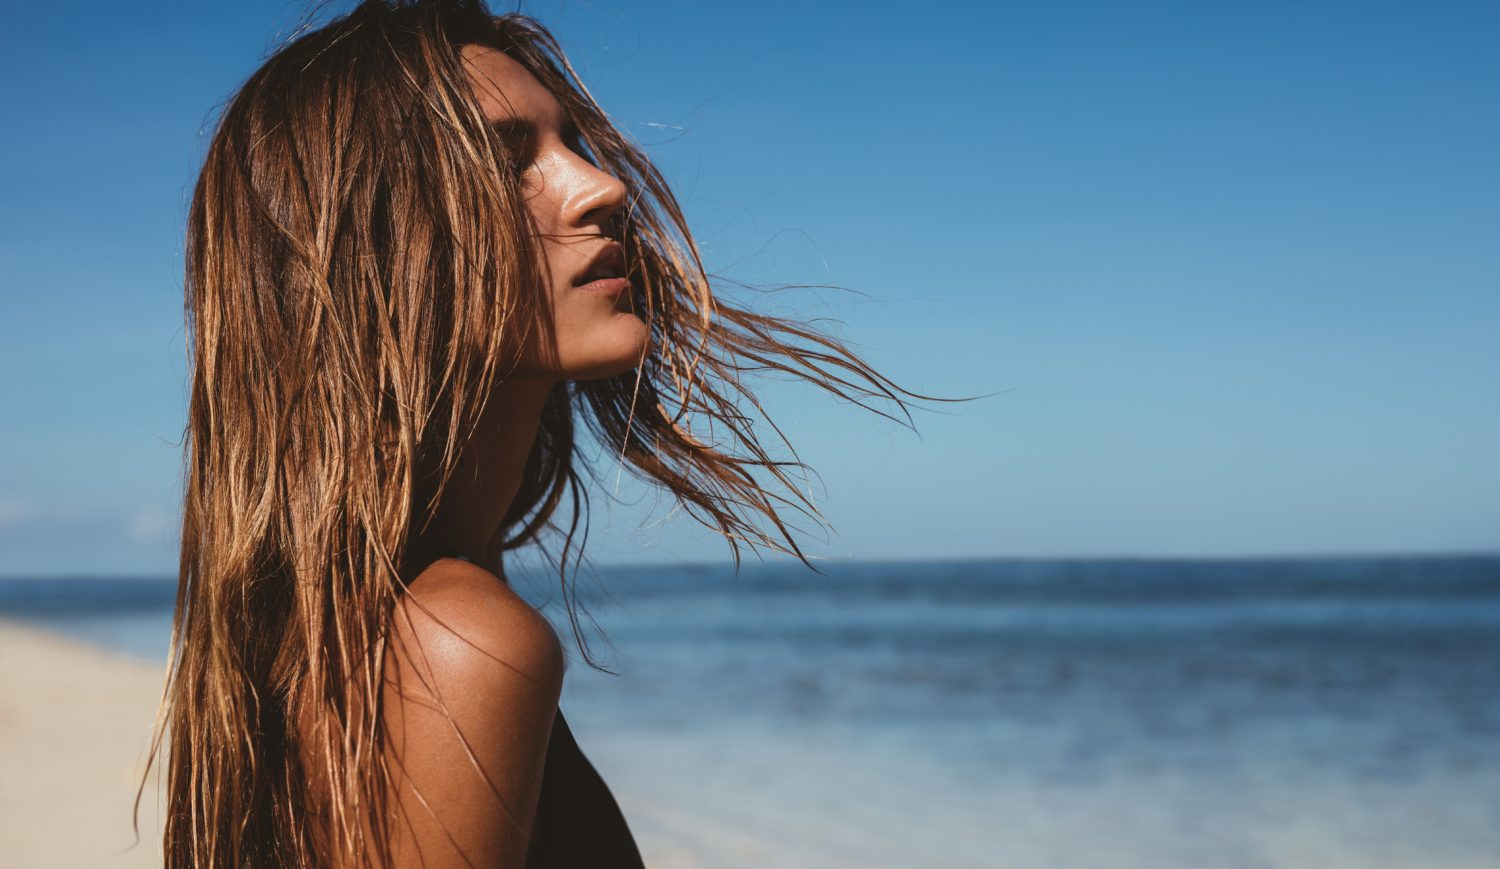 eautiful young woman on the beach - things to do Maui